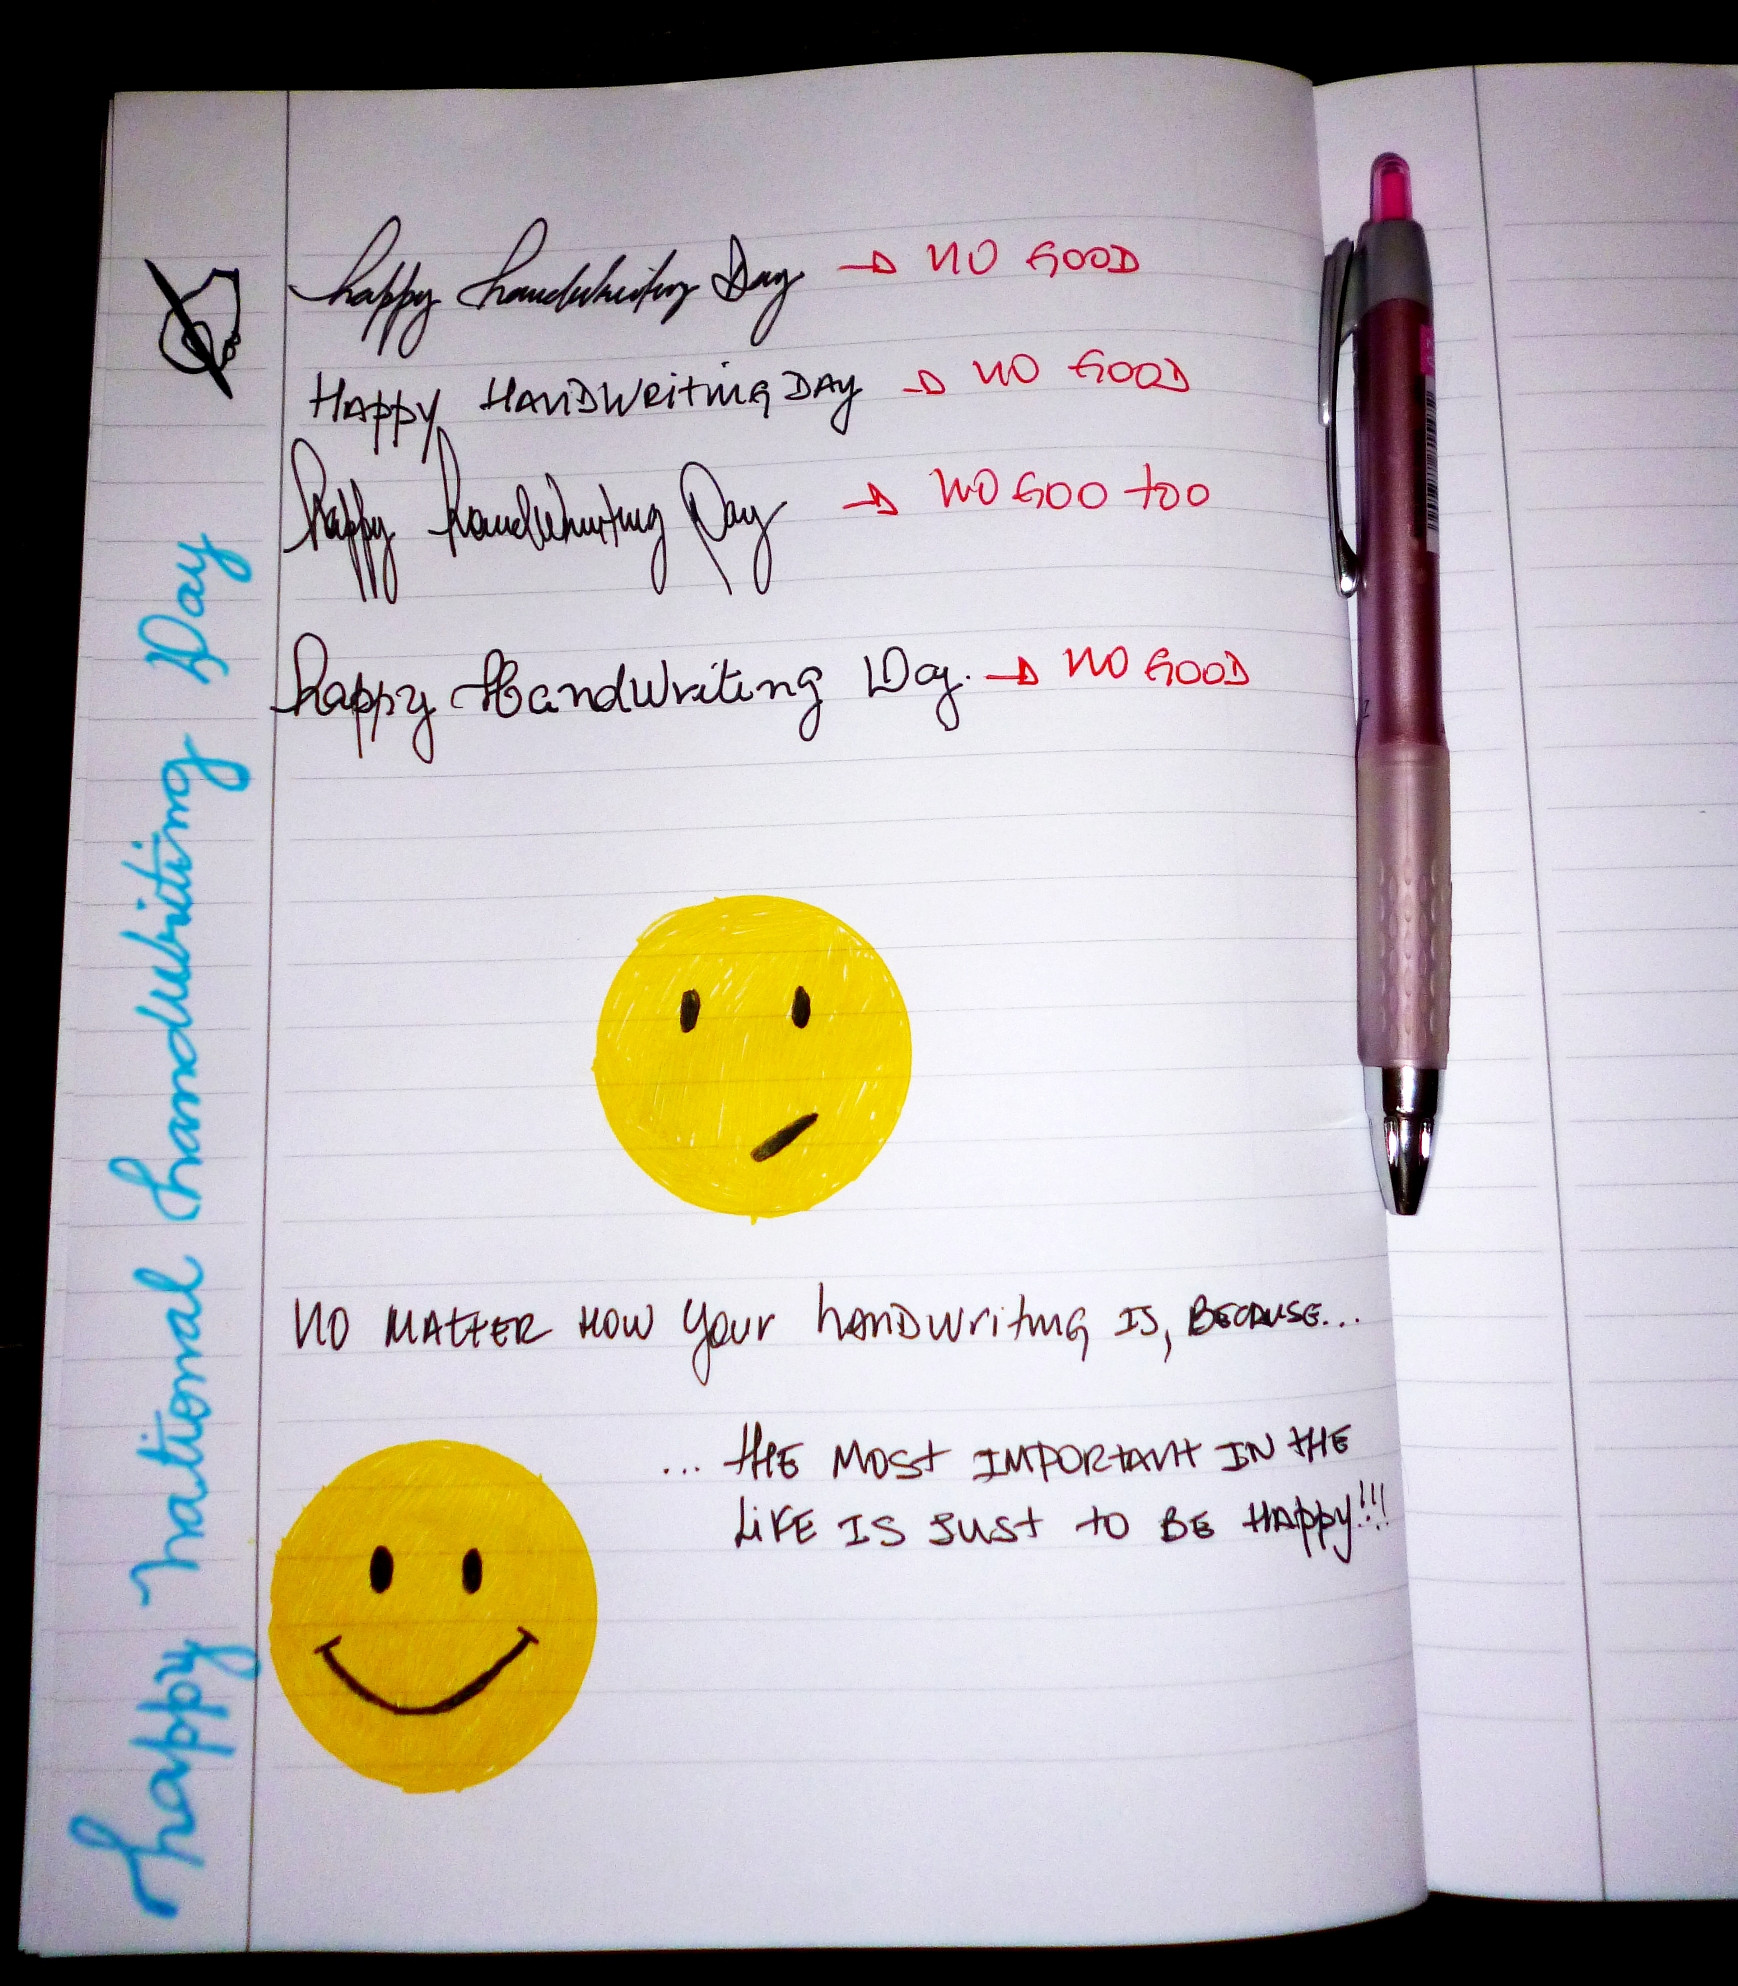 Do not worry about how your handwriting looks like, just be happy!